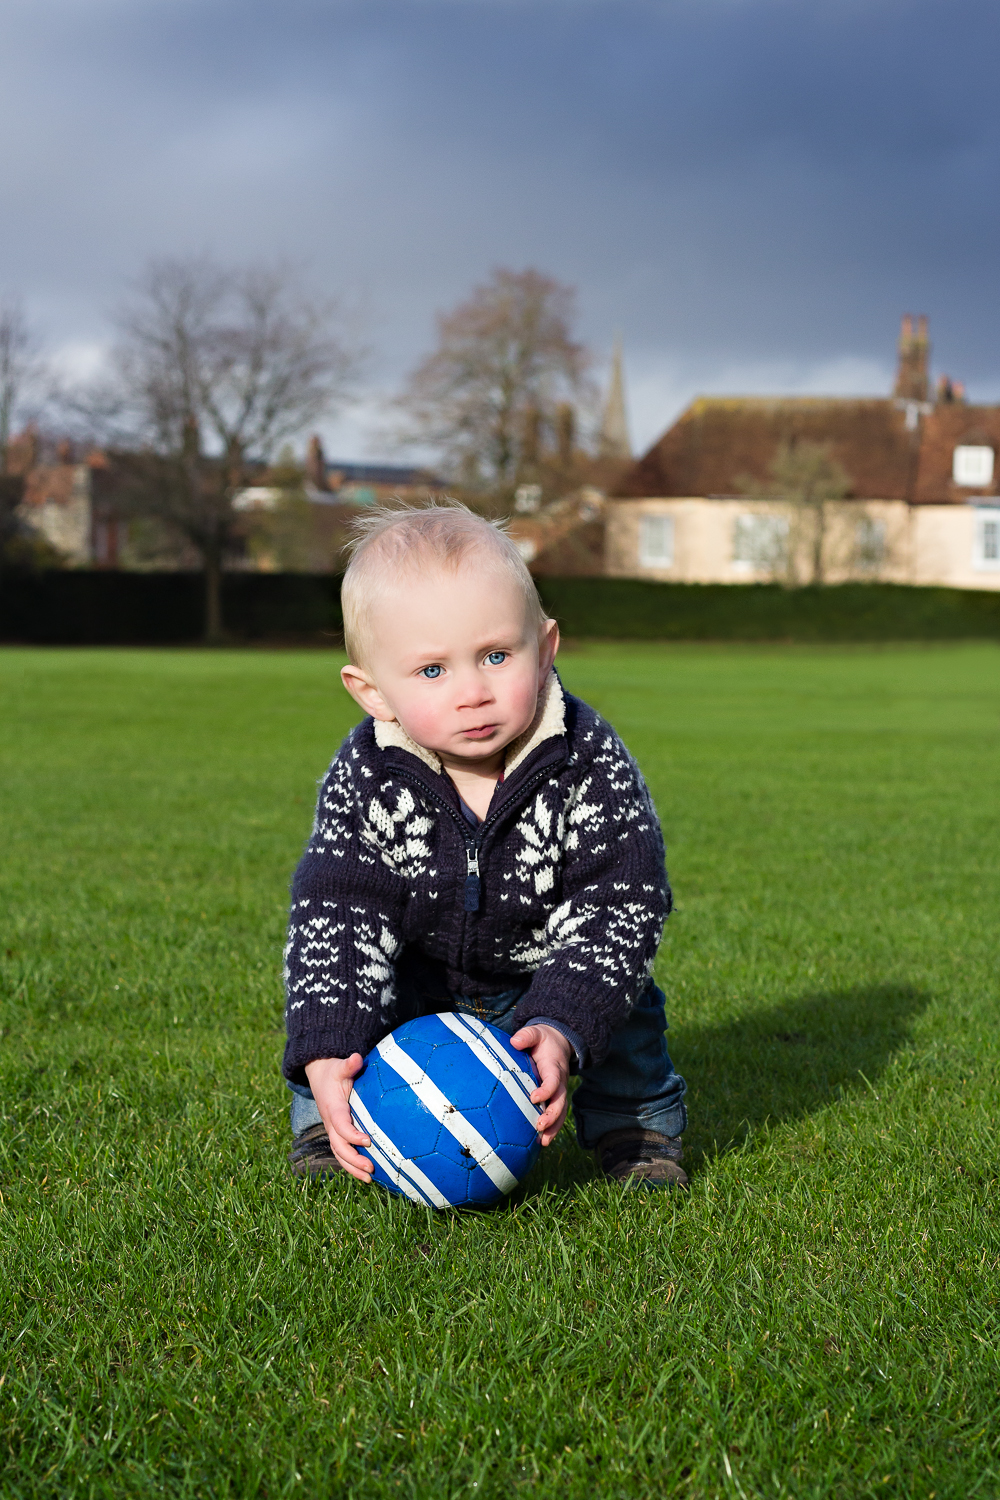 A little boy in a Christmas snowflake jumper leans down to pick up a football, with thundery clouds in the background.